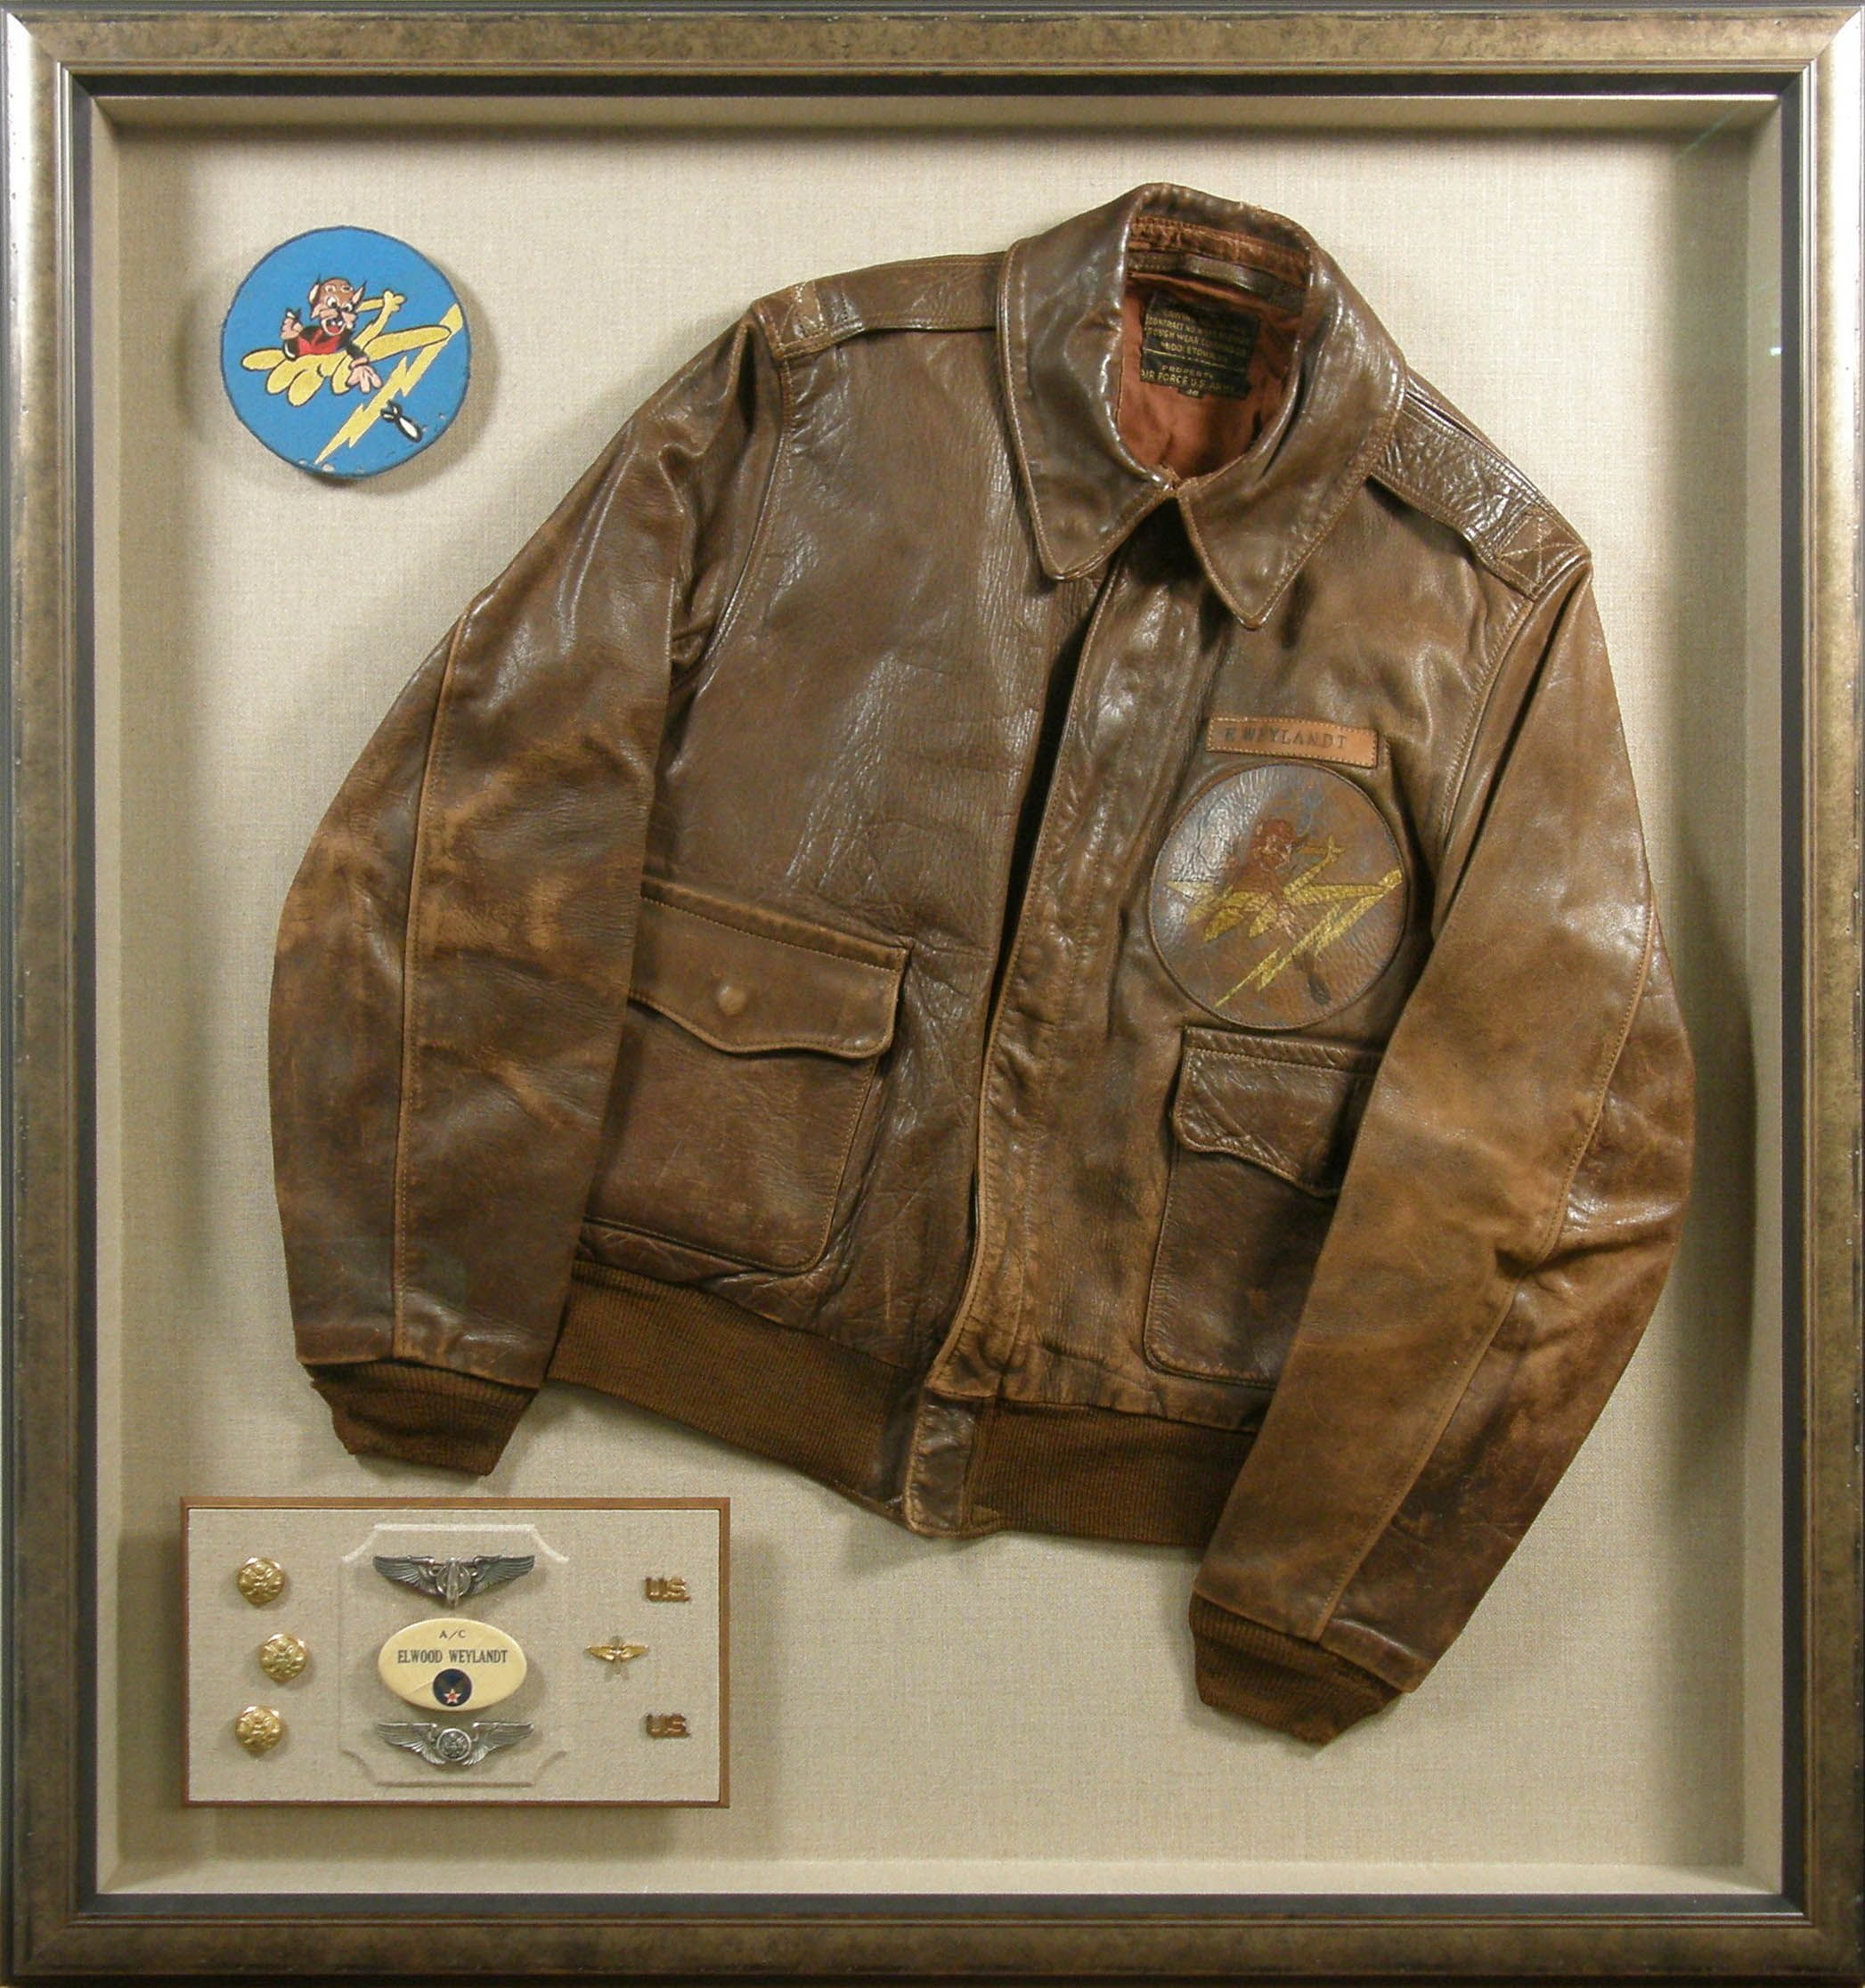 A Shadowbox Frame Is A Great Way To Save That Old Bomber Jacket